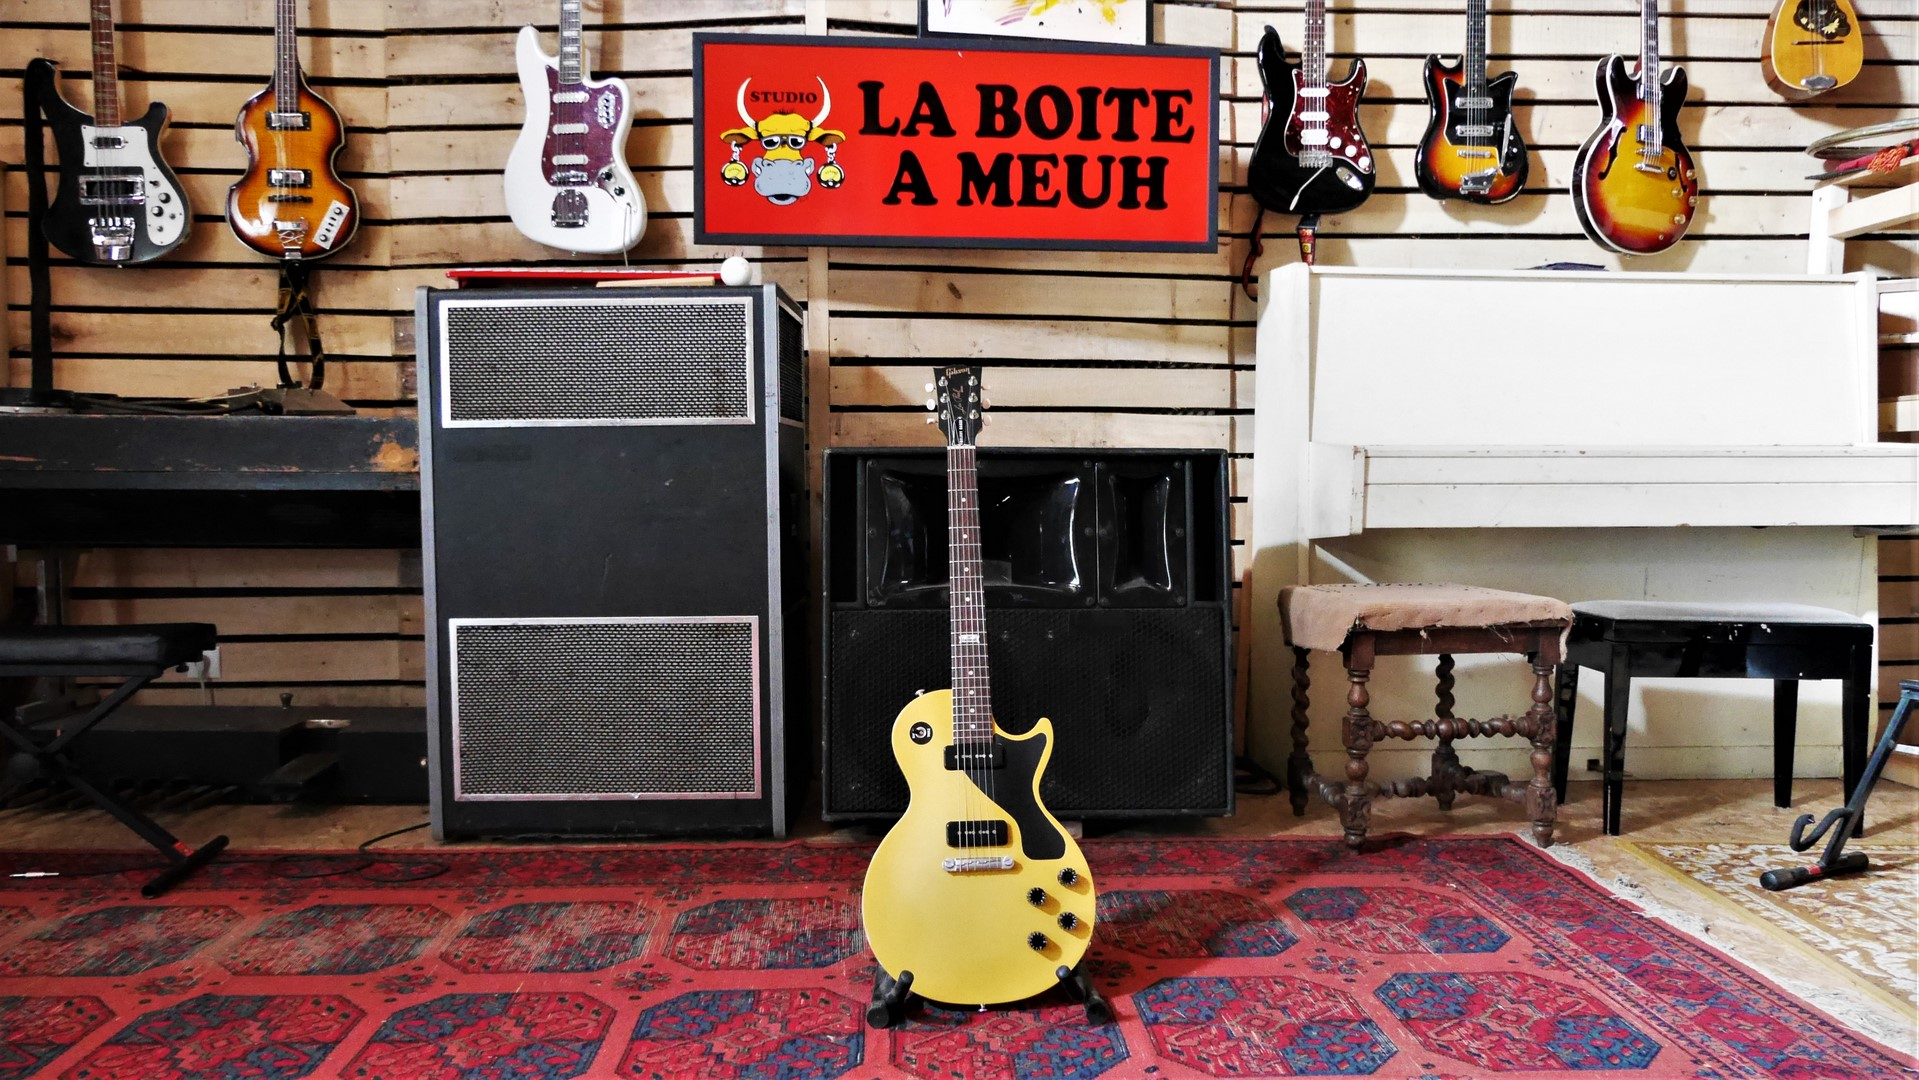 studio-la-boite-a-meuh-gibson-les-paul-melody-maker-120th